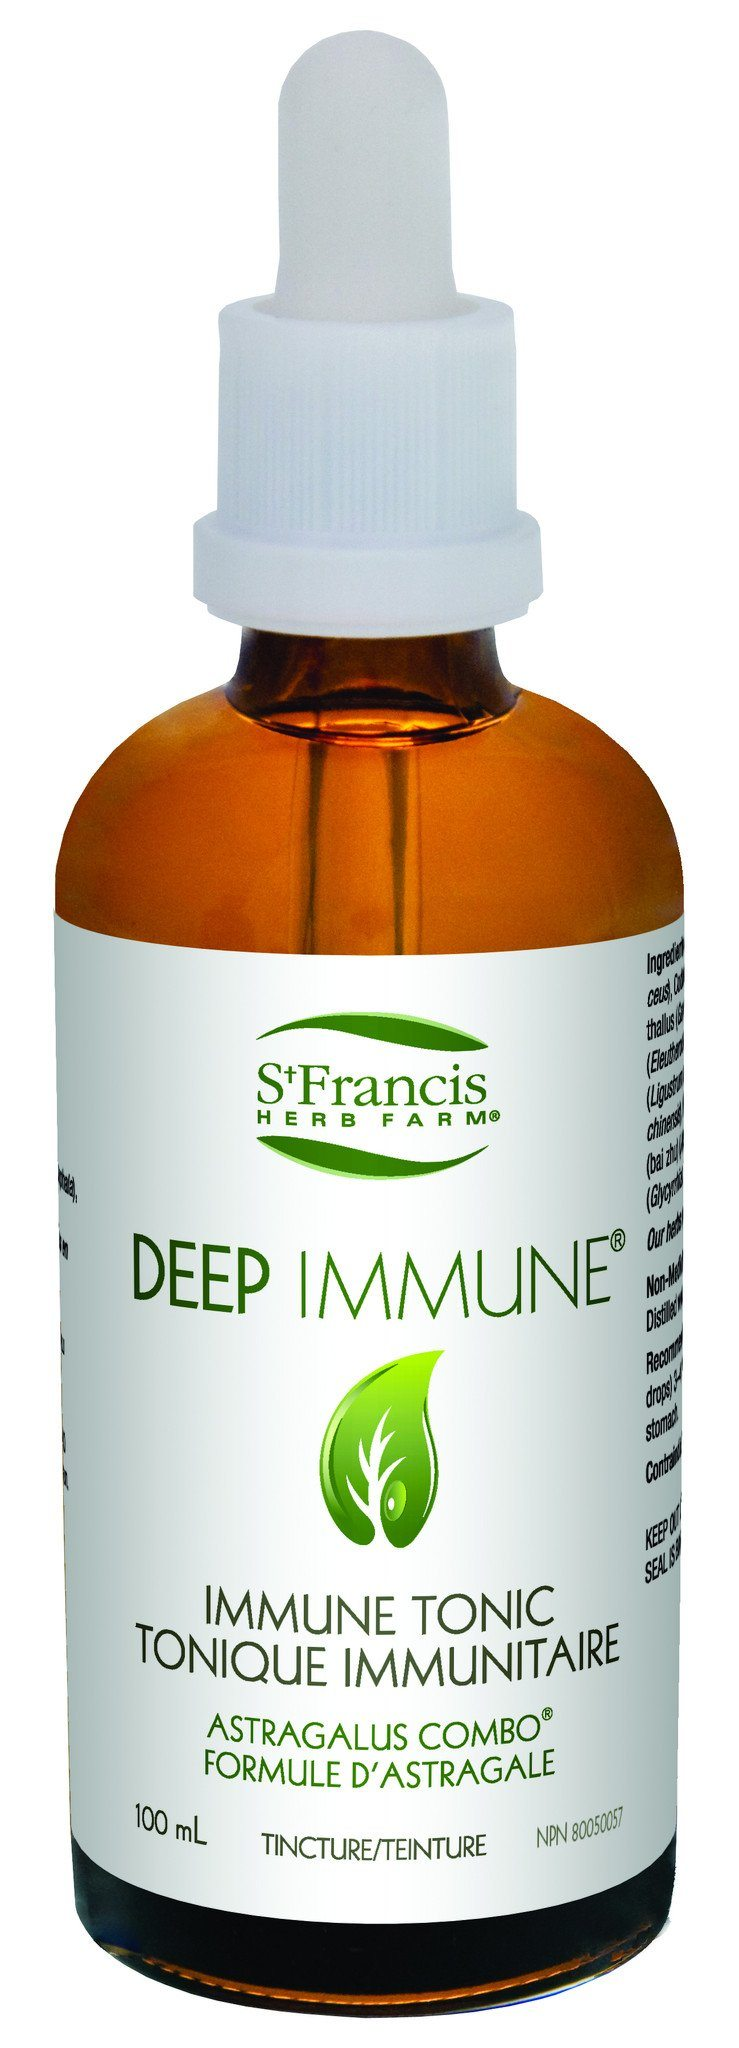 Supplements & Vitamins - St. Francis - Deep Immune, 100ml